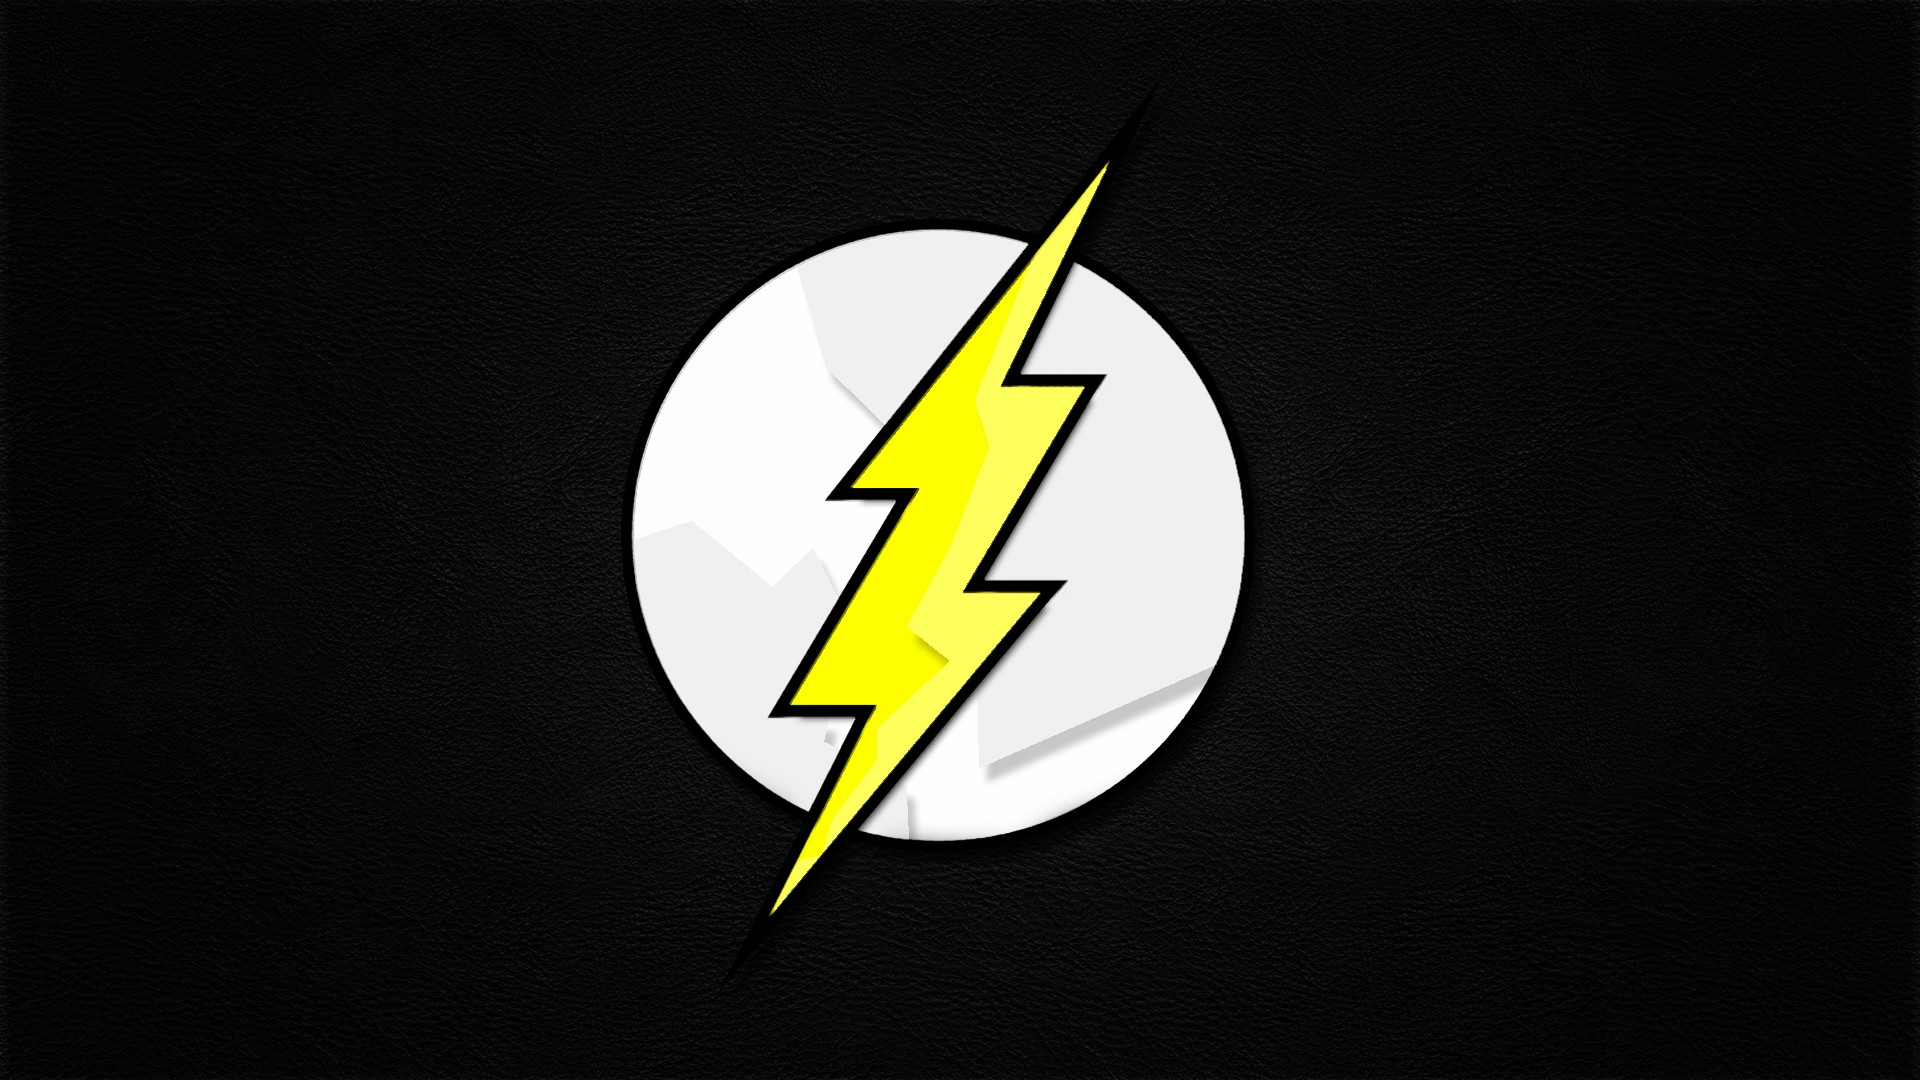 Comicsics The Flash logos Flash superhero wallpaper background 1920x1080